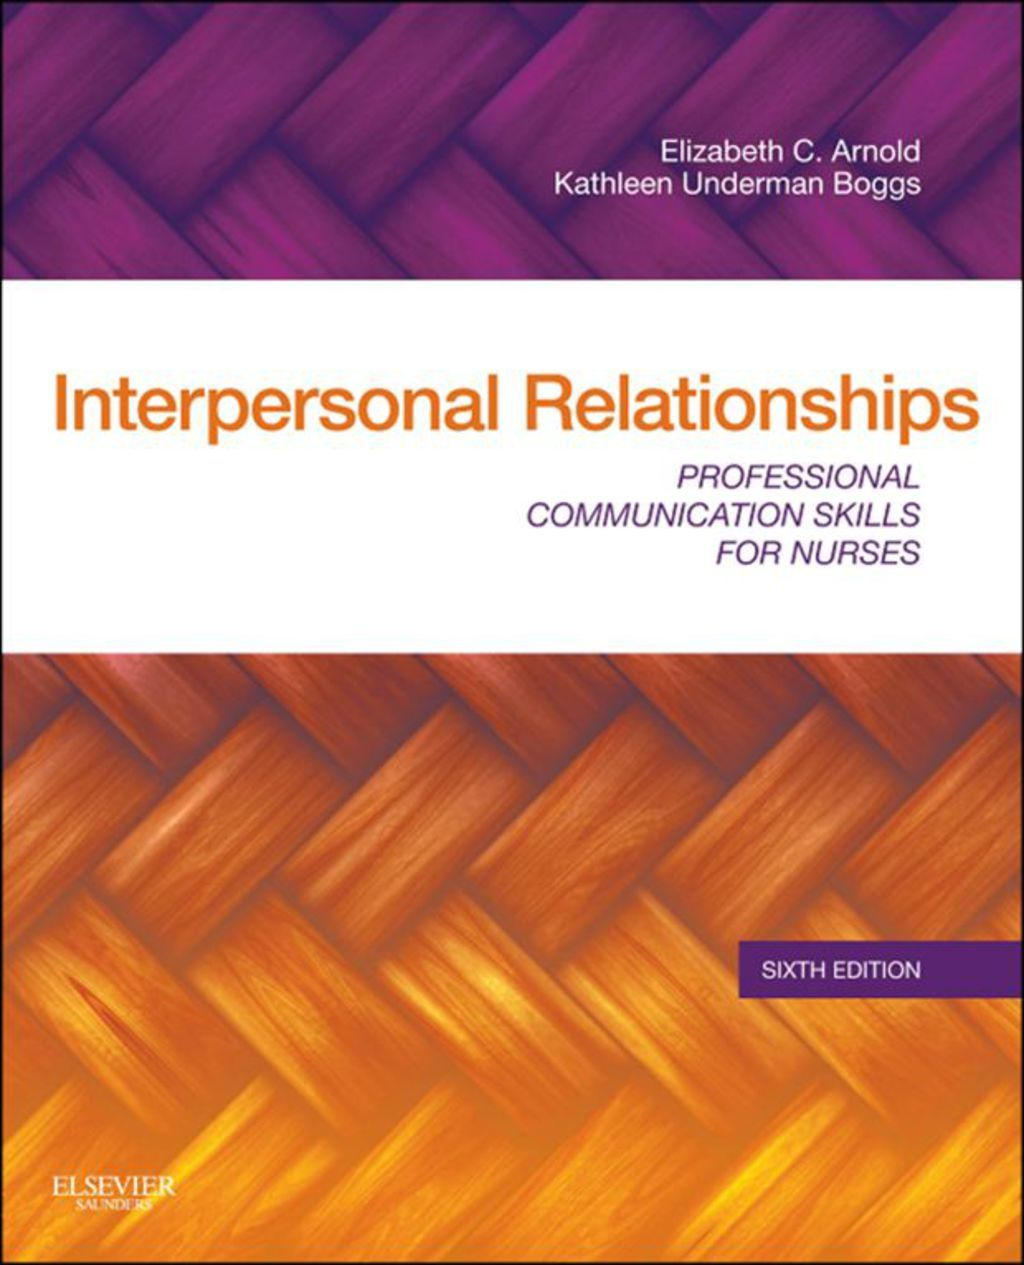 Interpersonal Relationships Professional Communication